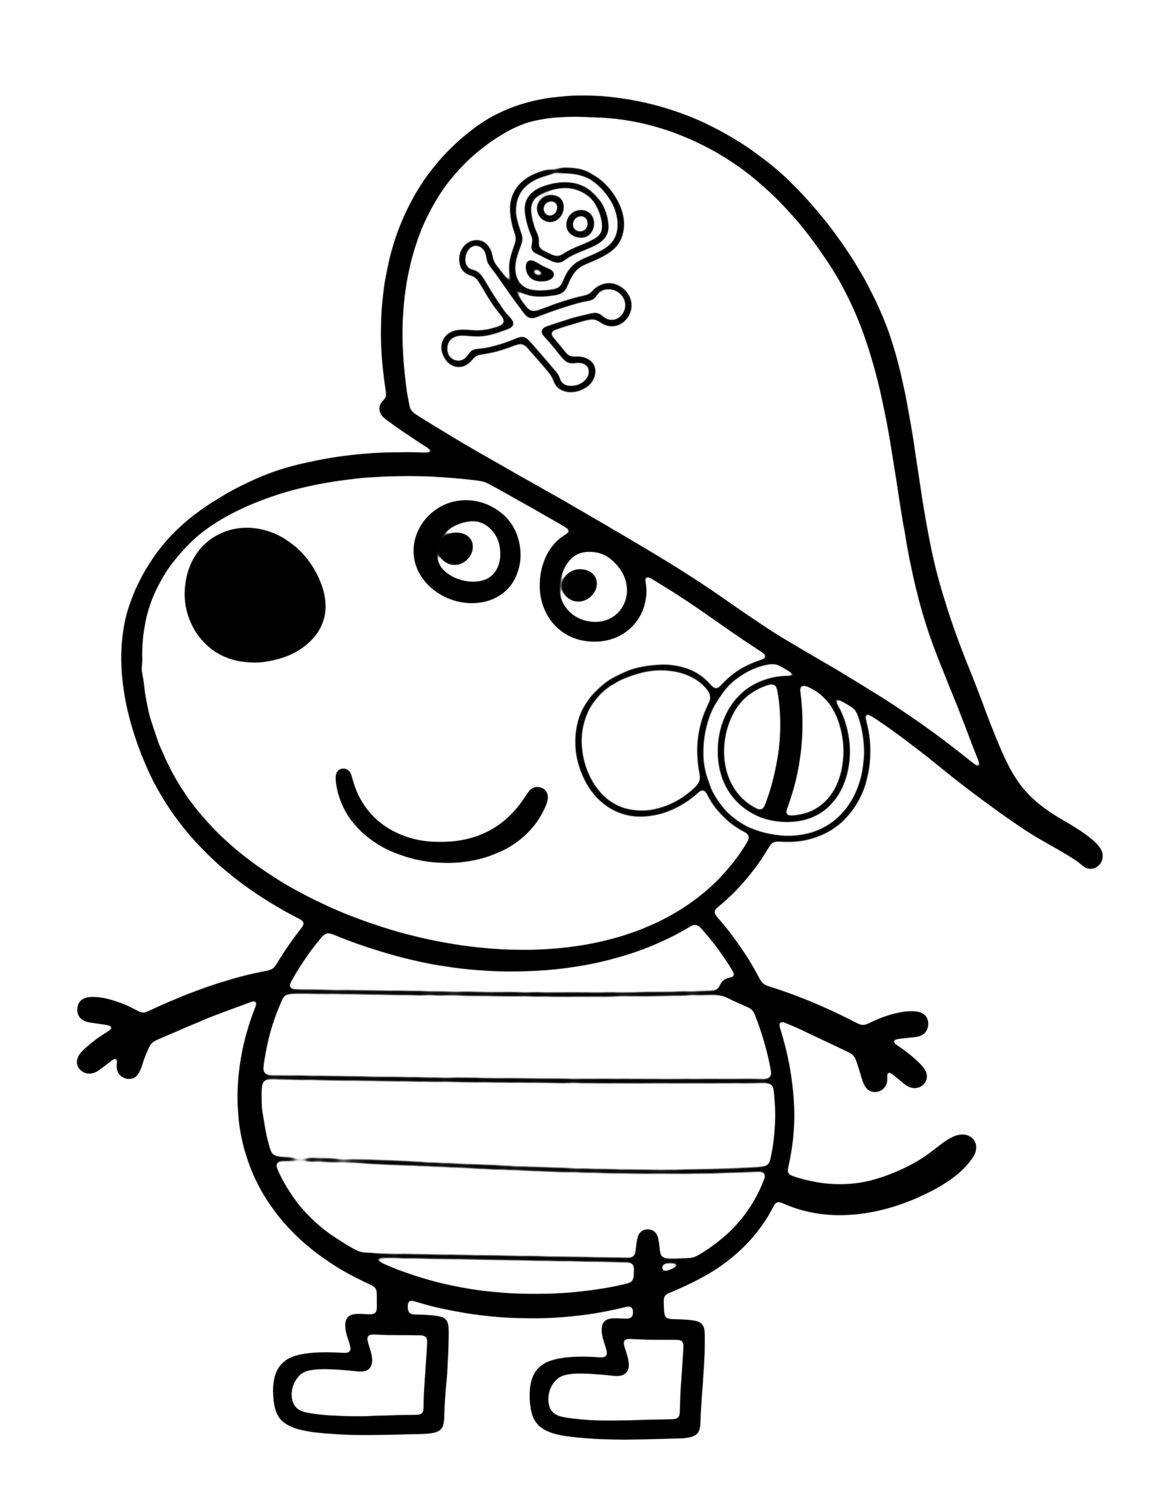 le peppa pig colouring pages page | PEPPA PIG | Pinterest ...